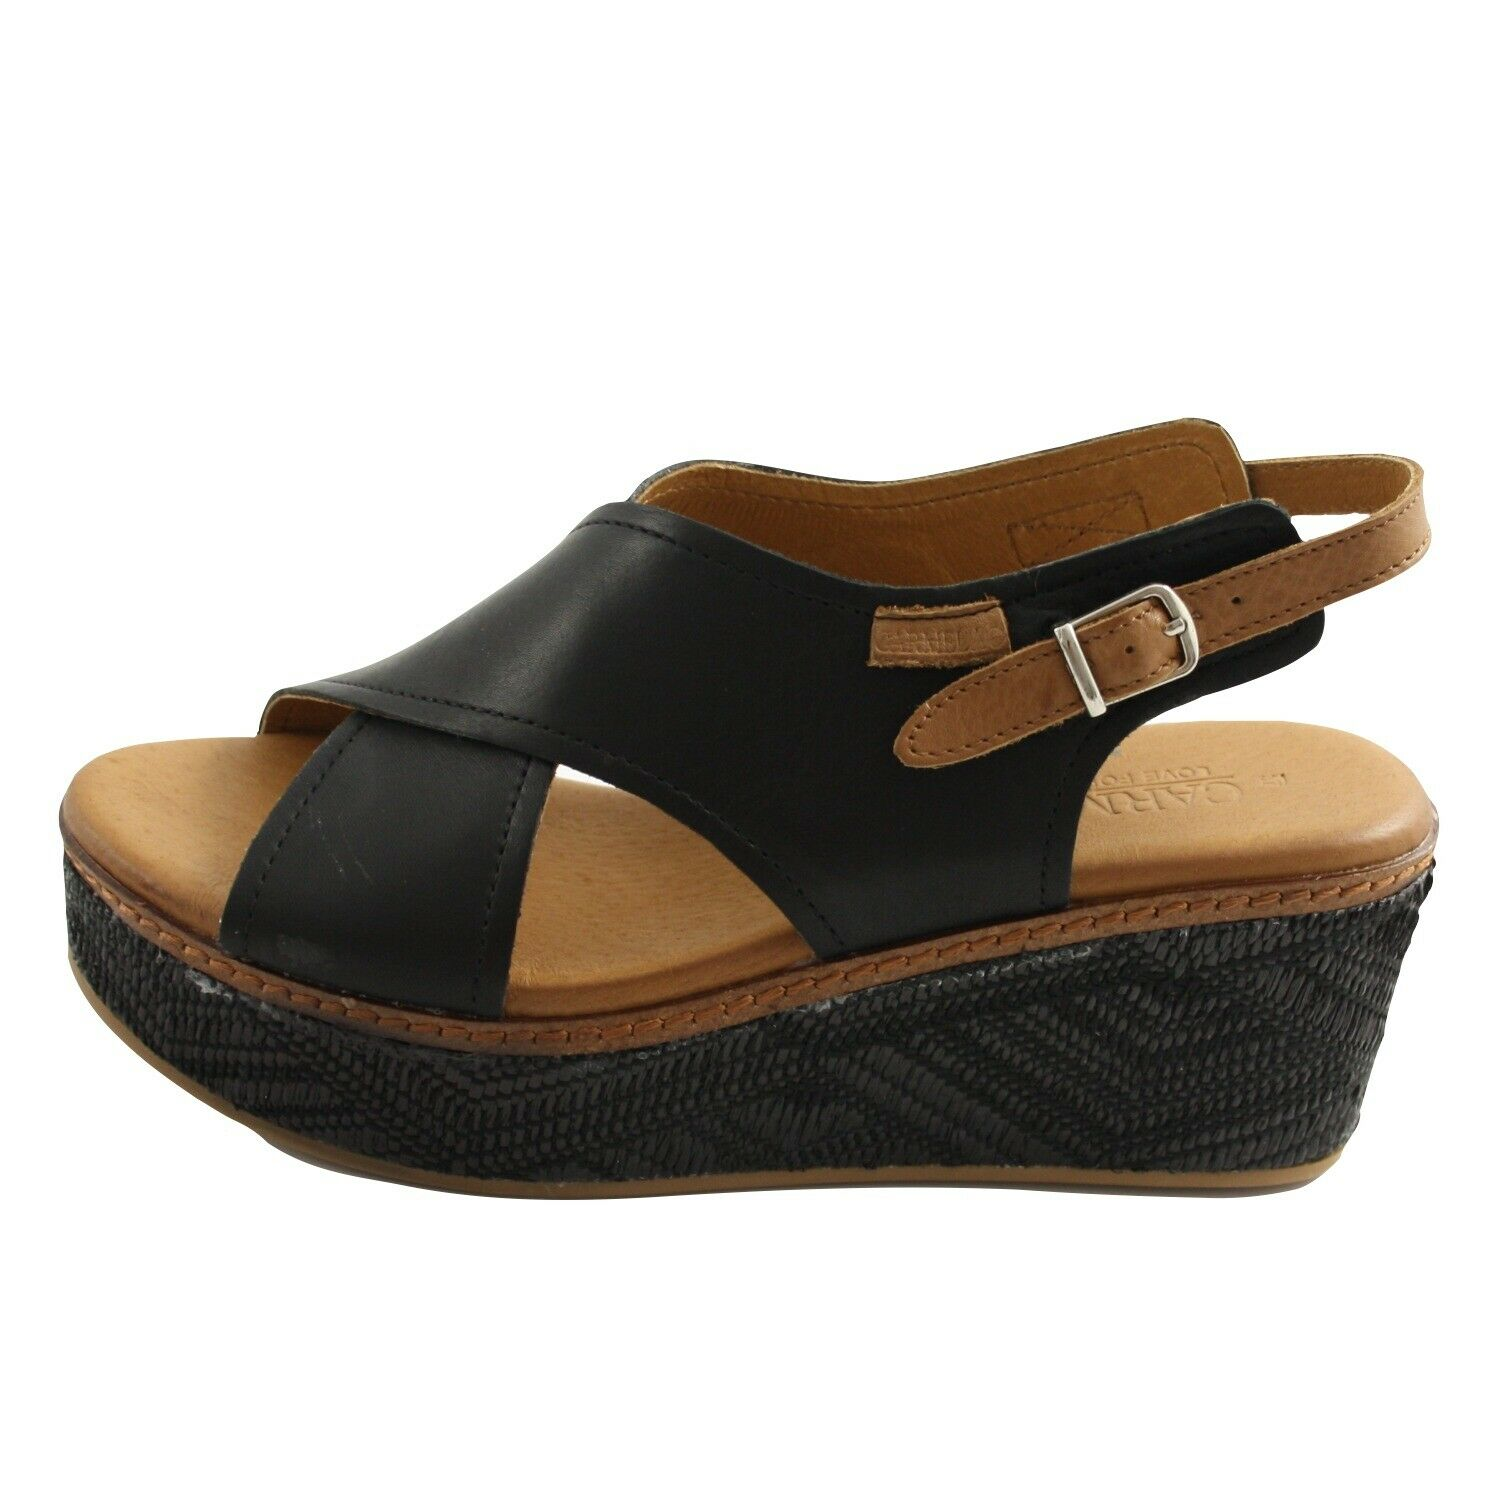 Shoes Sandals Summer Carmela Ladies Black Leather and Leather Brown Wedge Comfortable